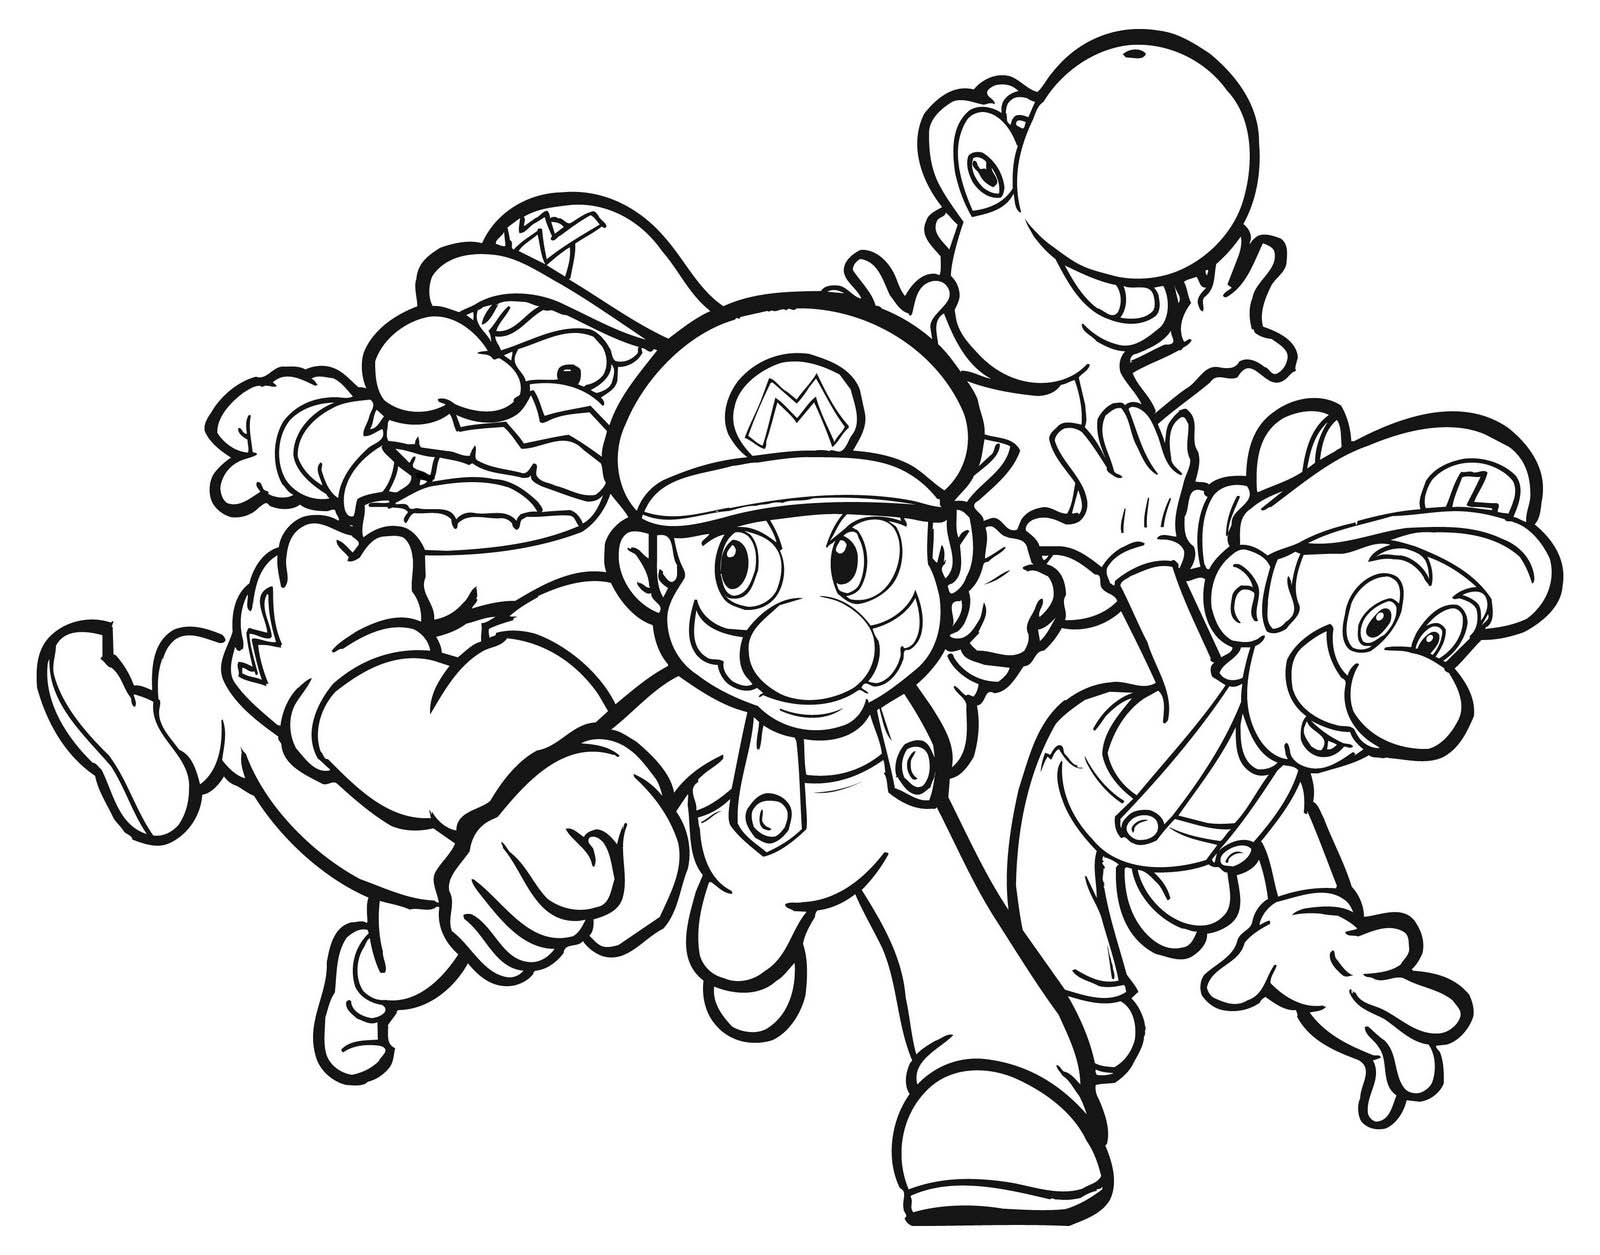 mario coloring pages free mario coloring pages themes best apps for kids pages free mario coloring